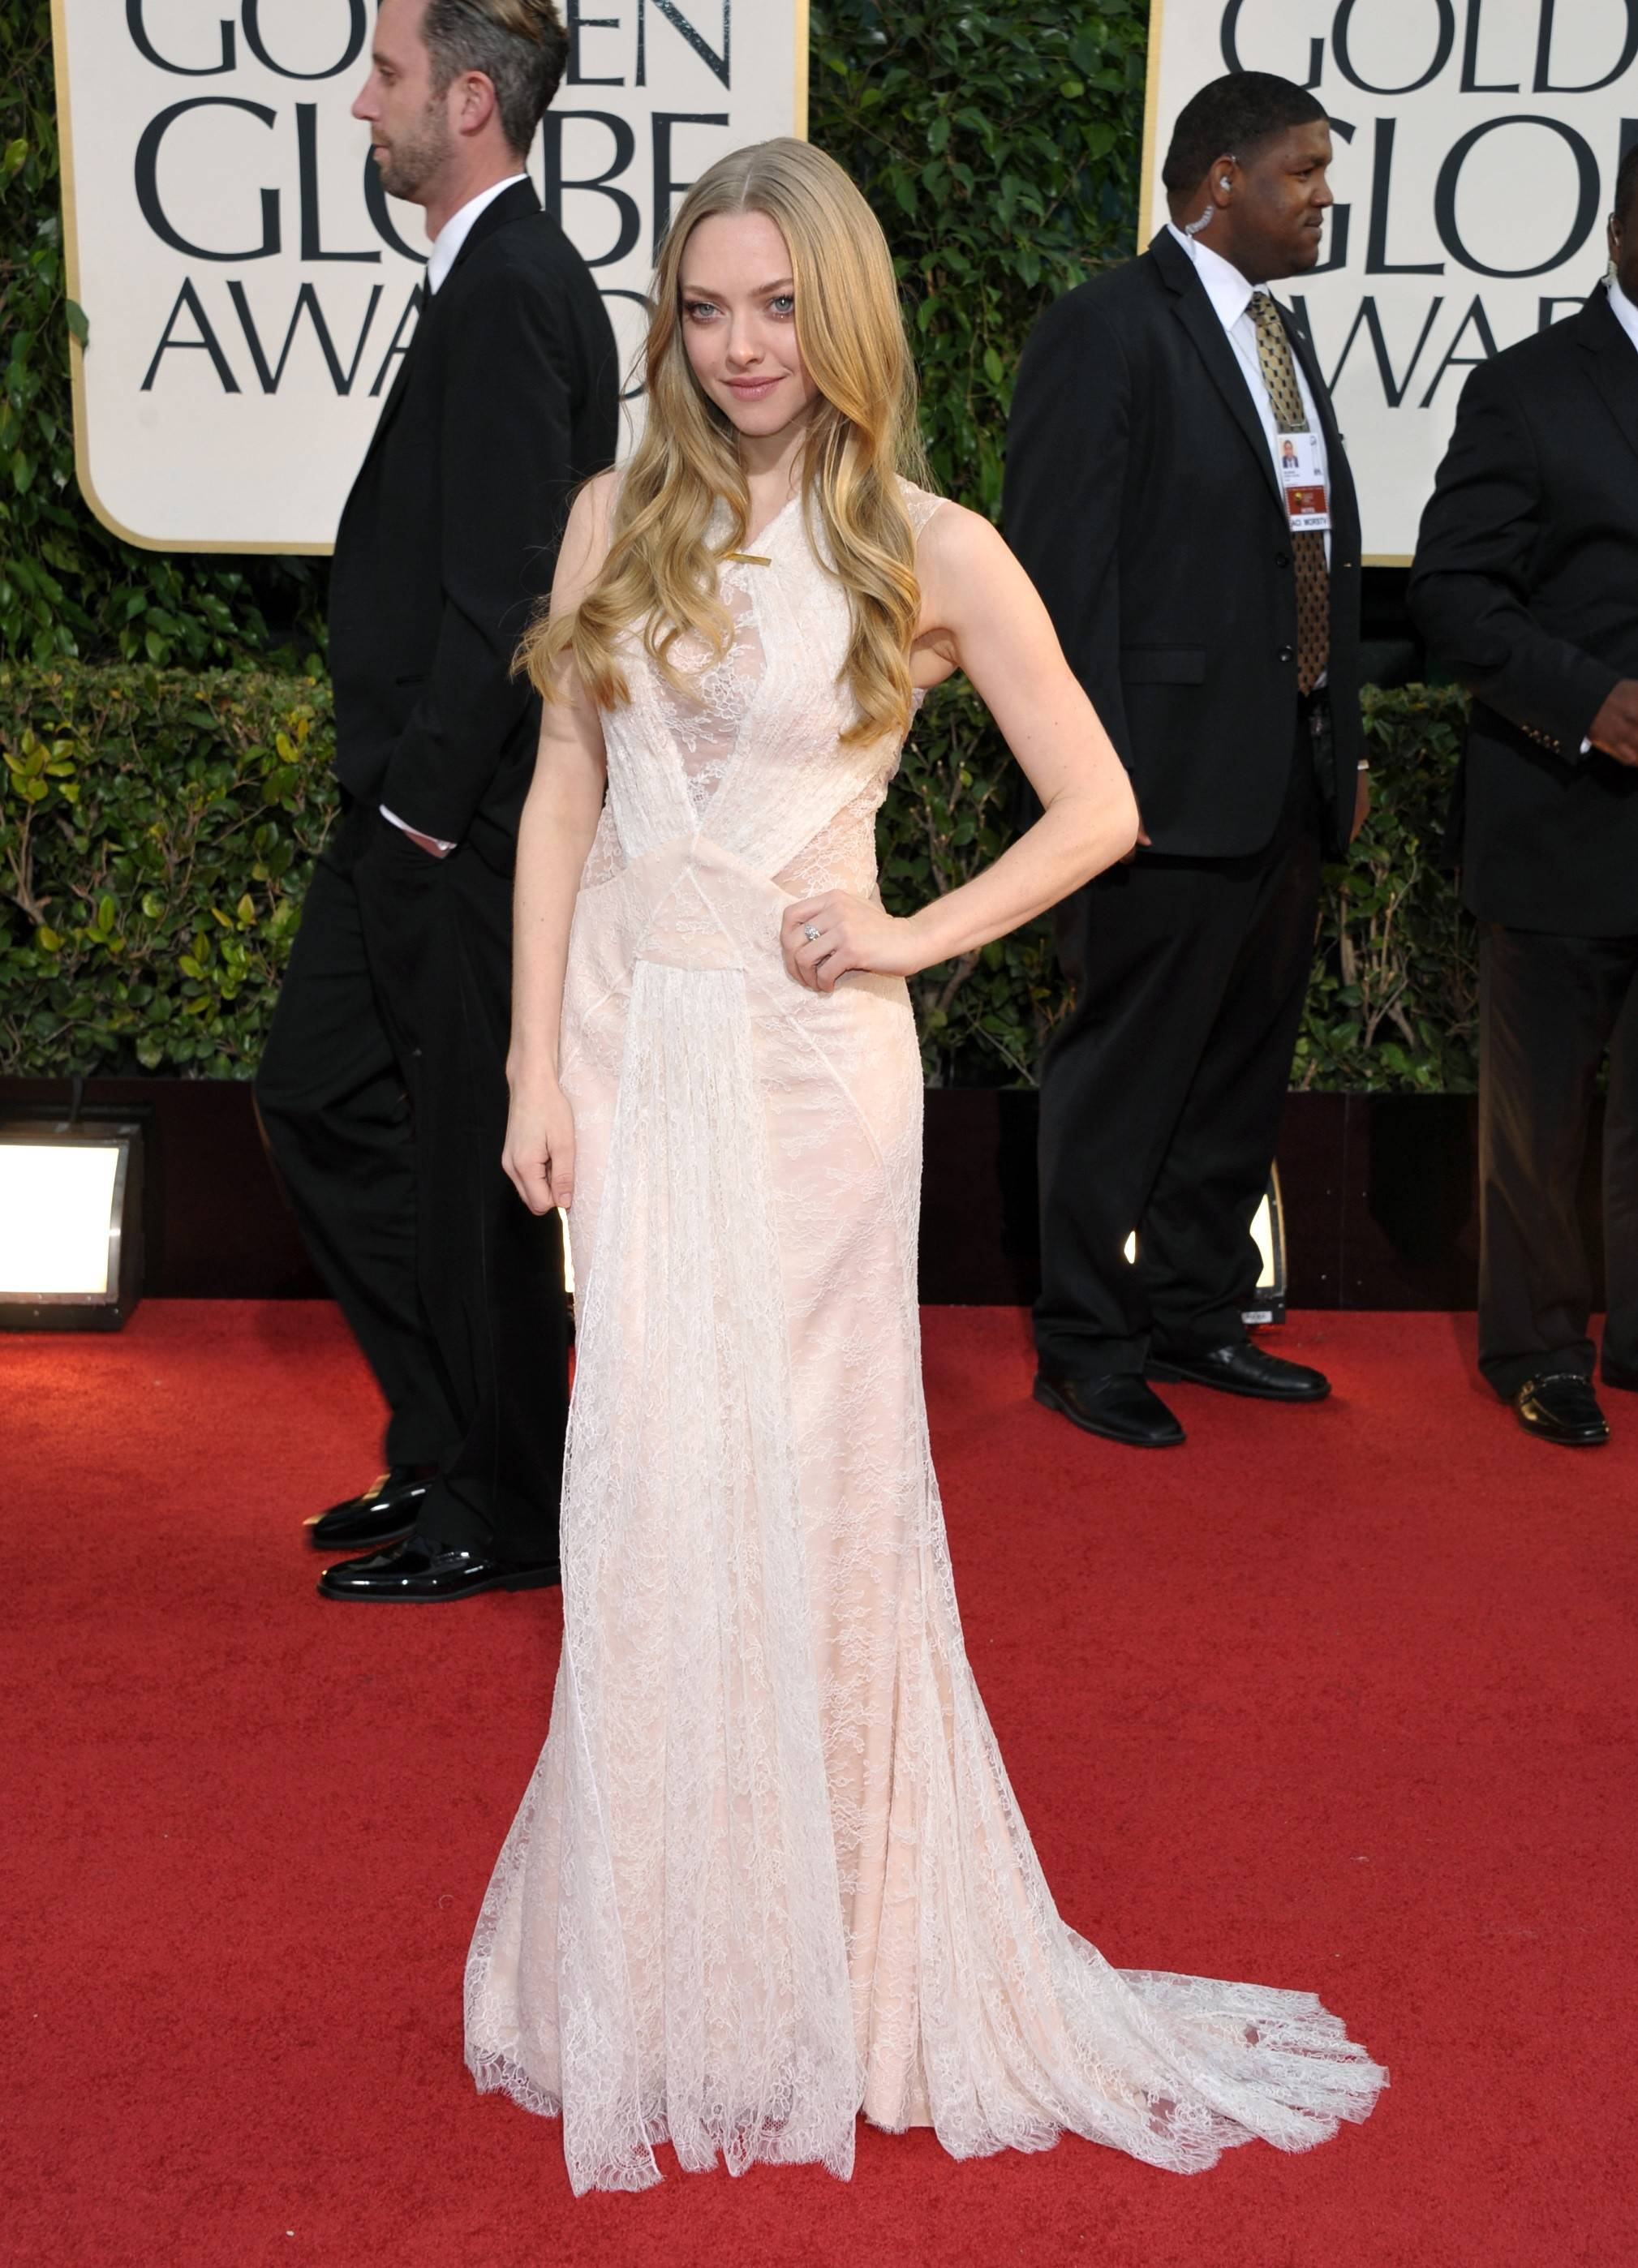 """Les Miserables"" star Amanda Seyfried poses on the red carpet before heading into the ceremony."